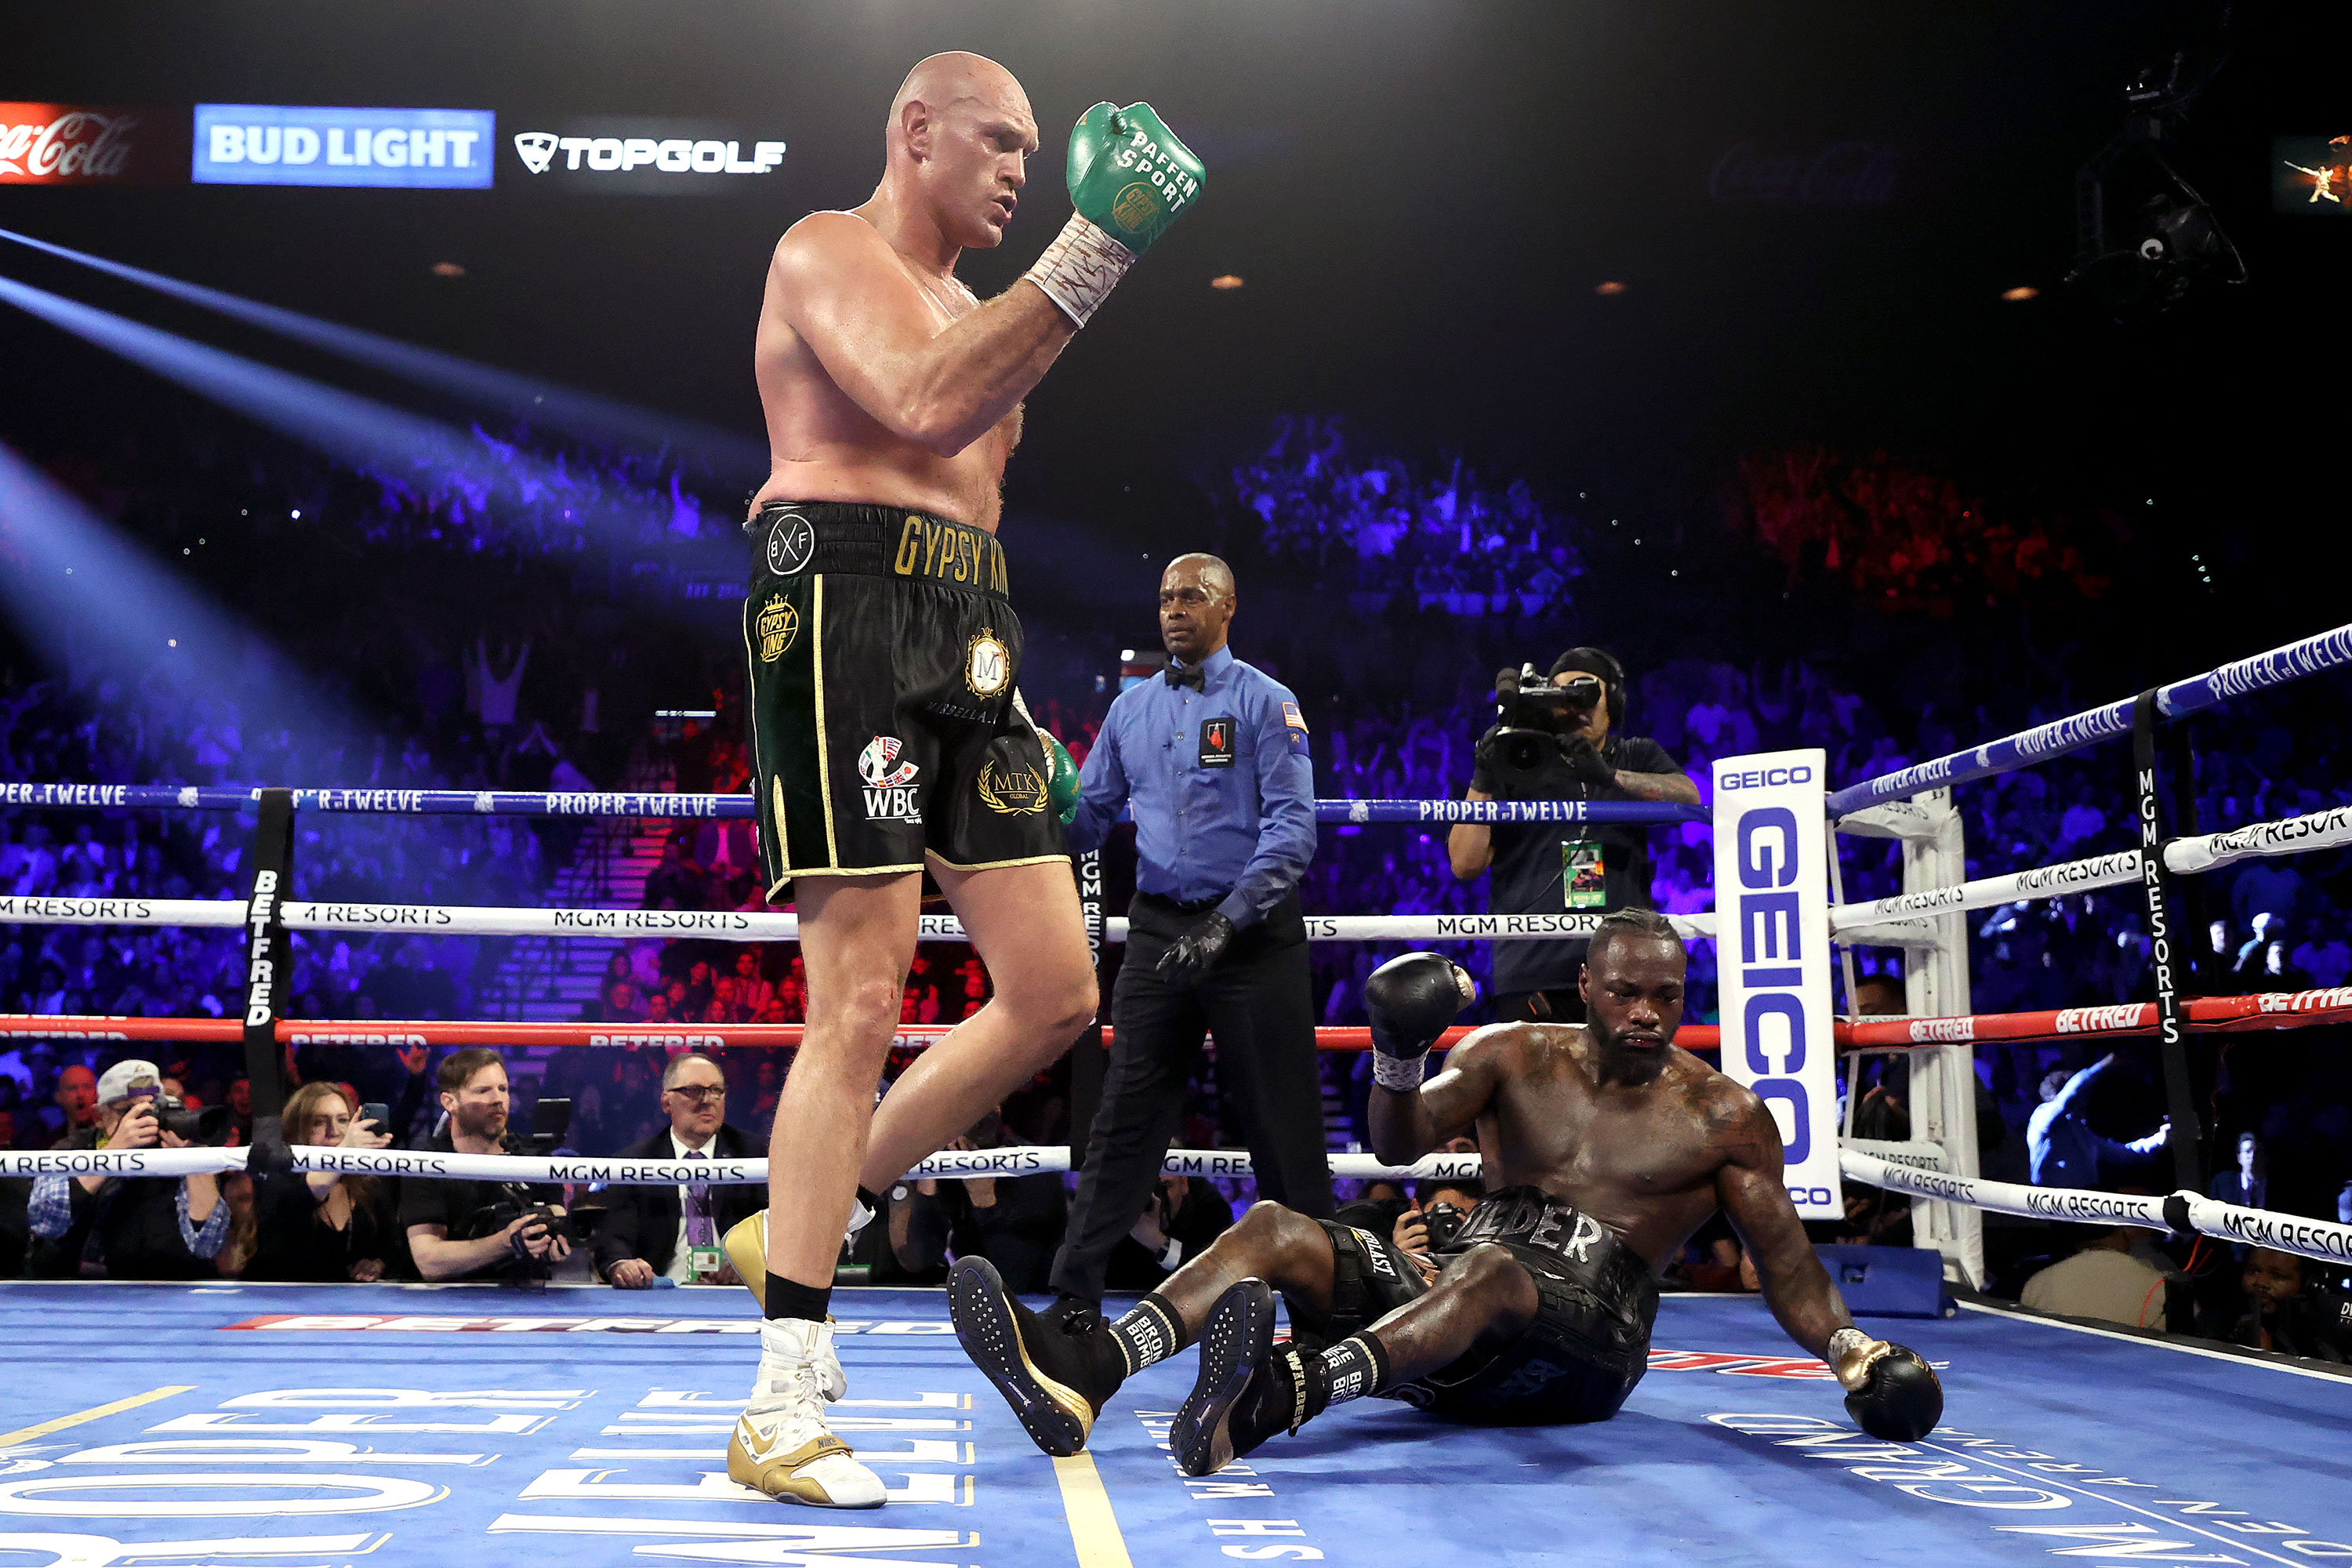 Tyson Fury stops Deontay Wilder in seventh round of WBC heavyweight title rematch